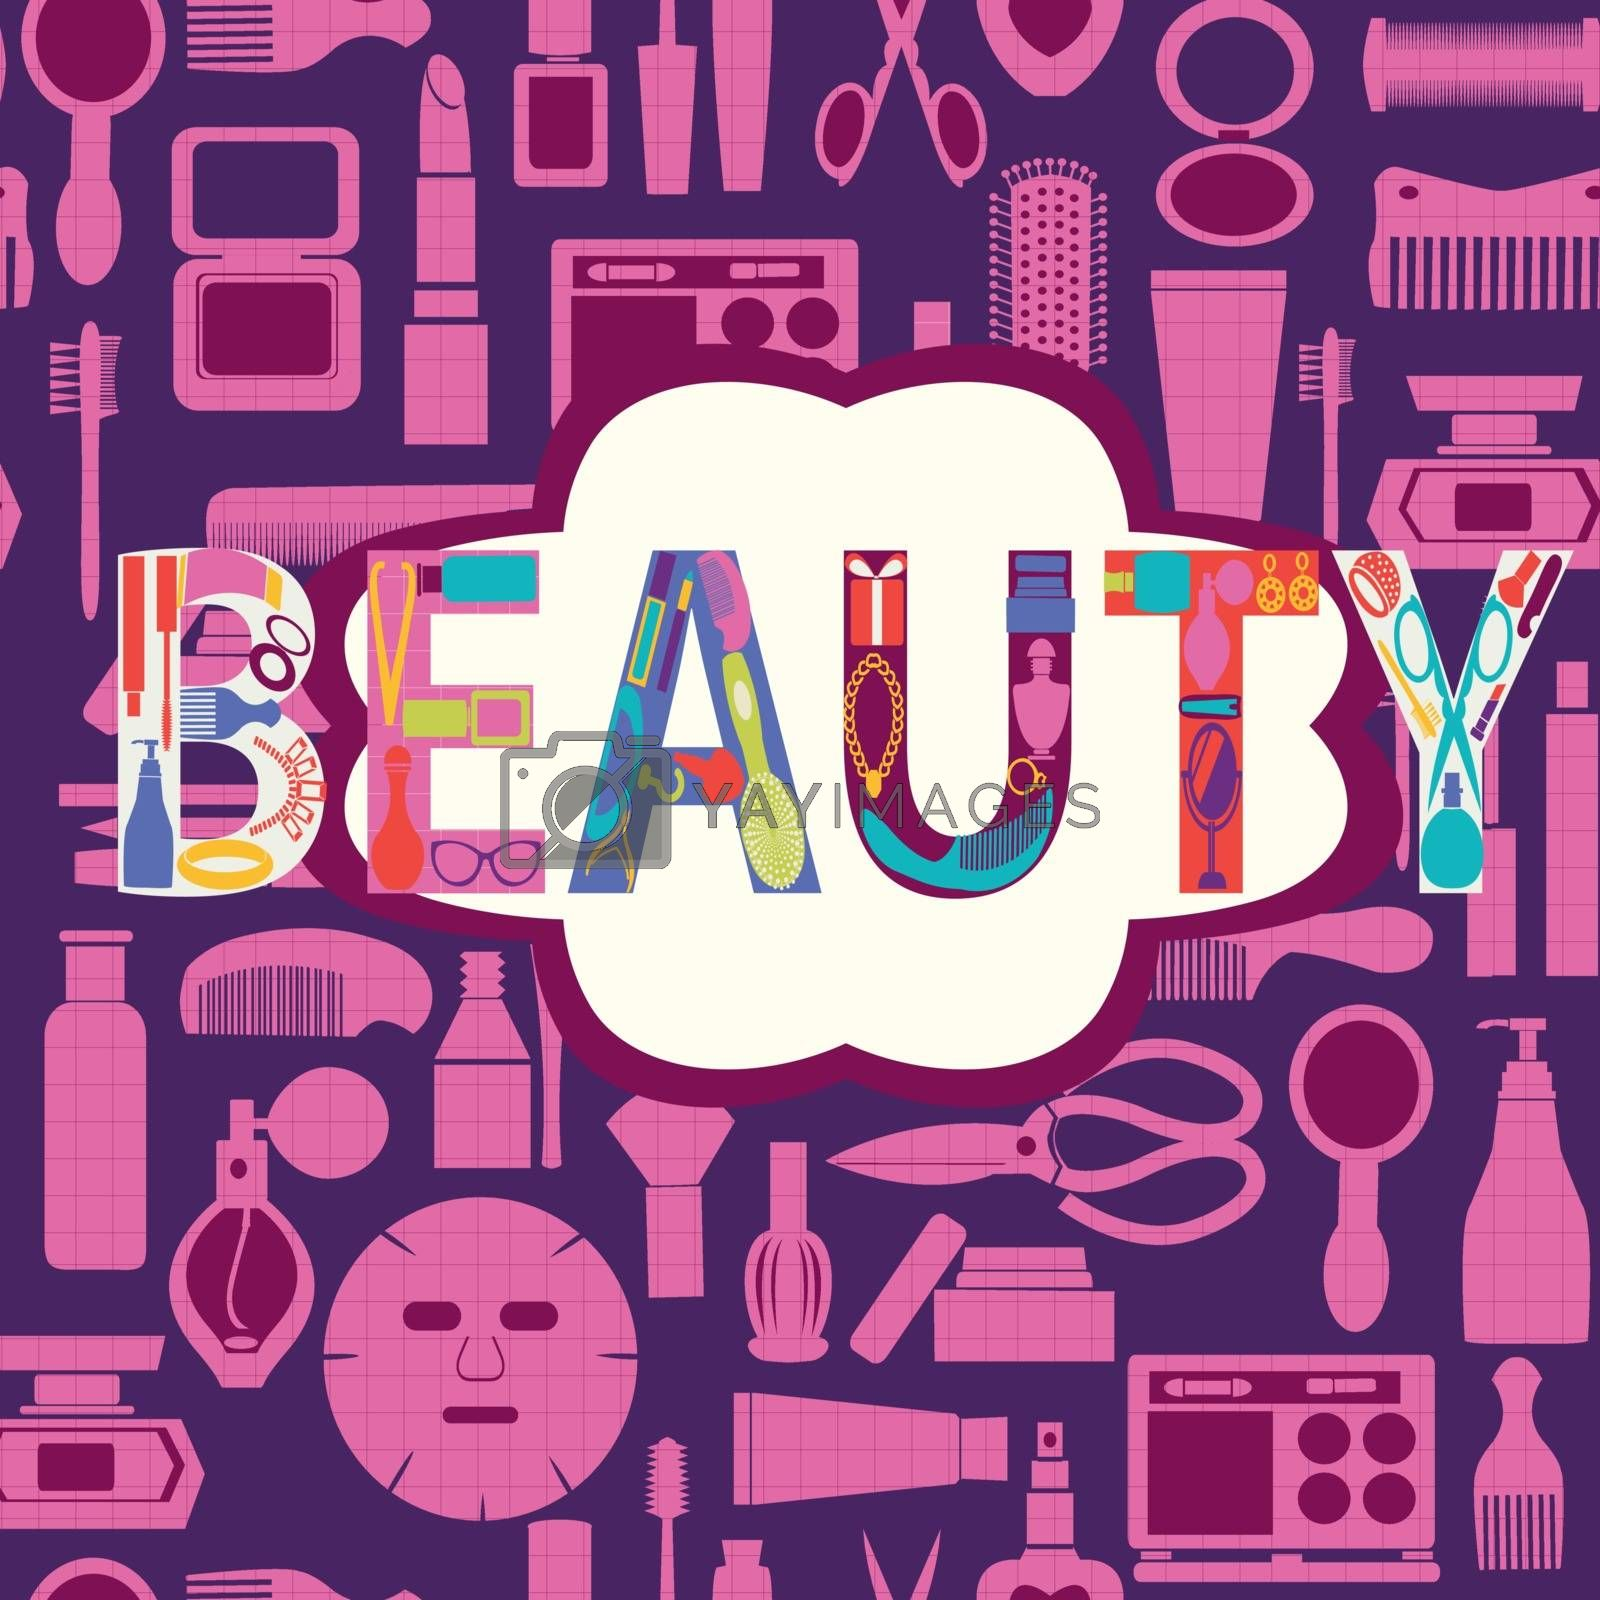 Vector pattern of makeup cosmetic and beauty silhouettes set icon background - Illustration